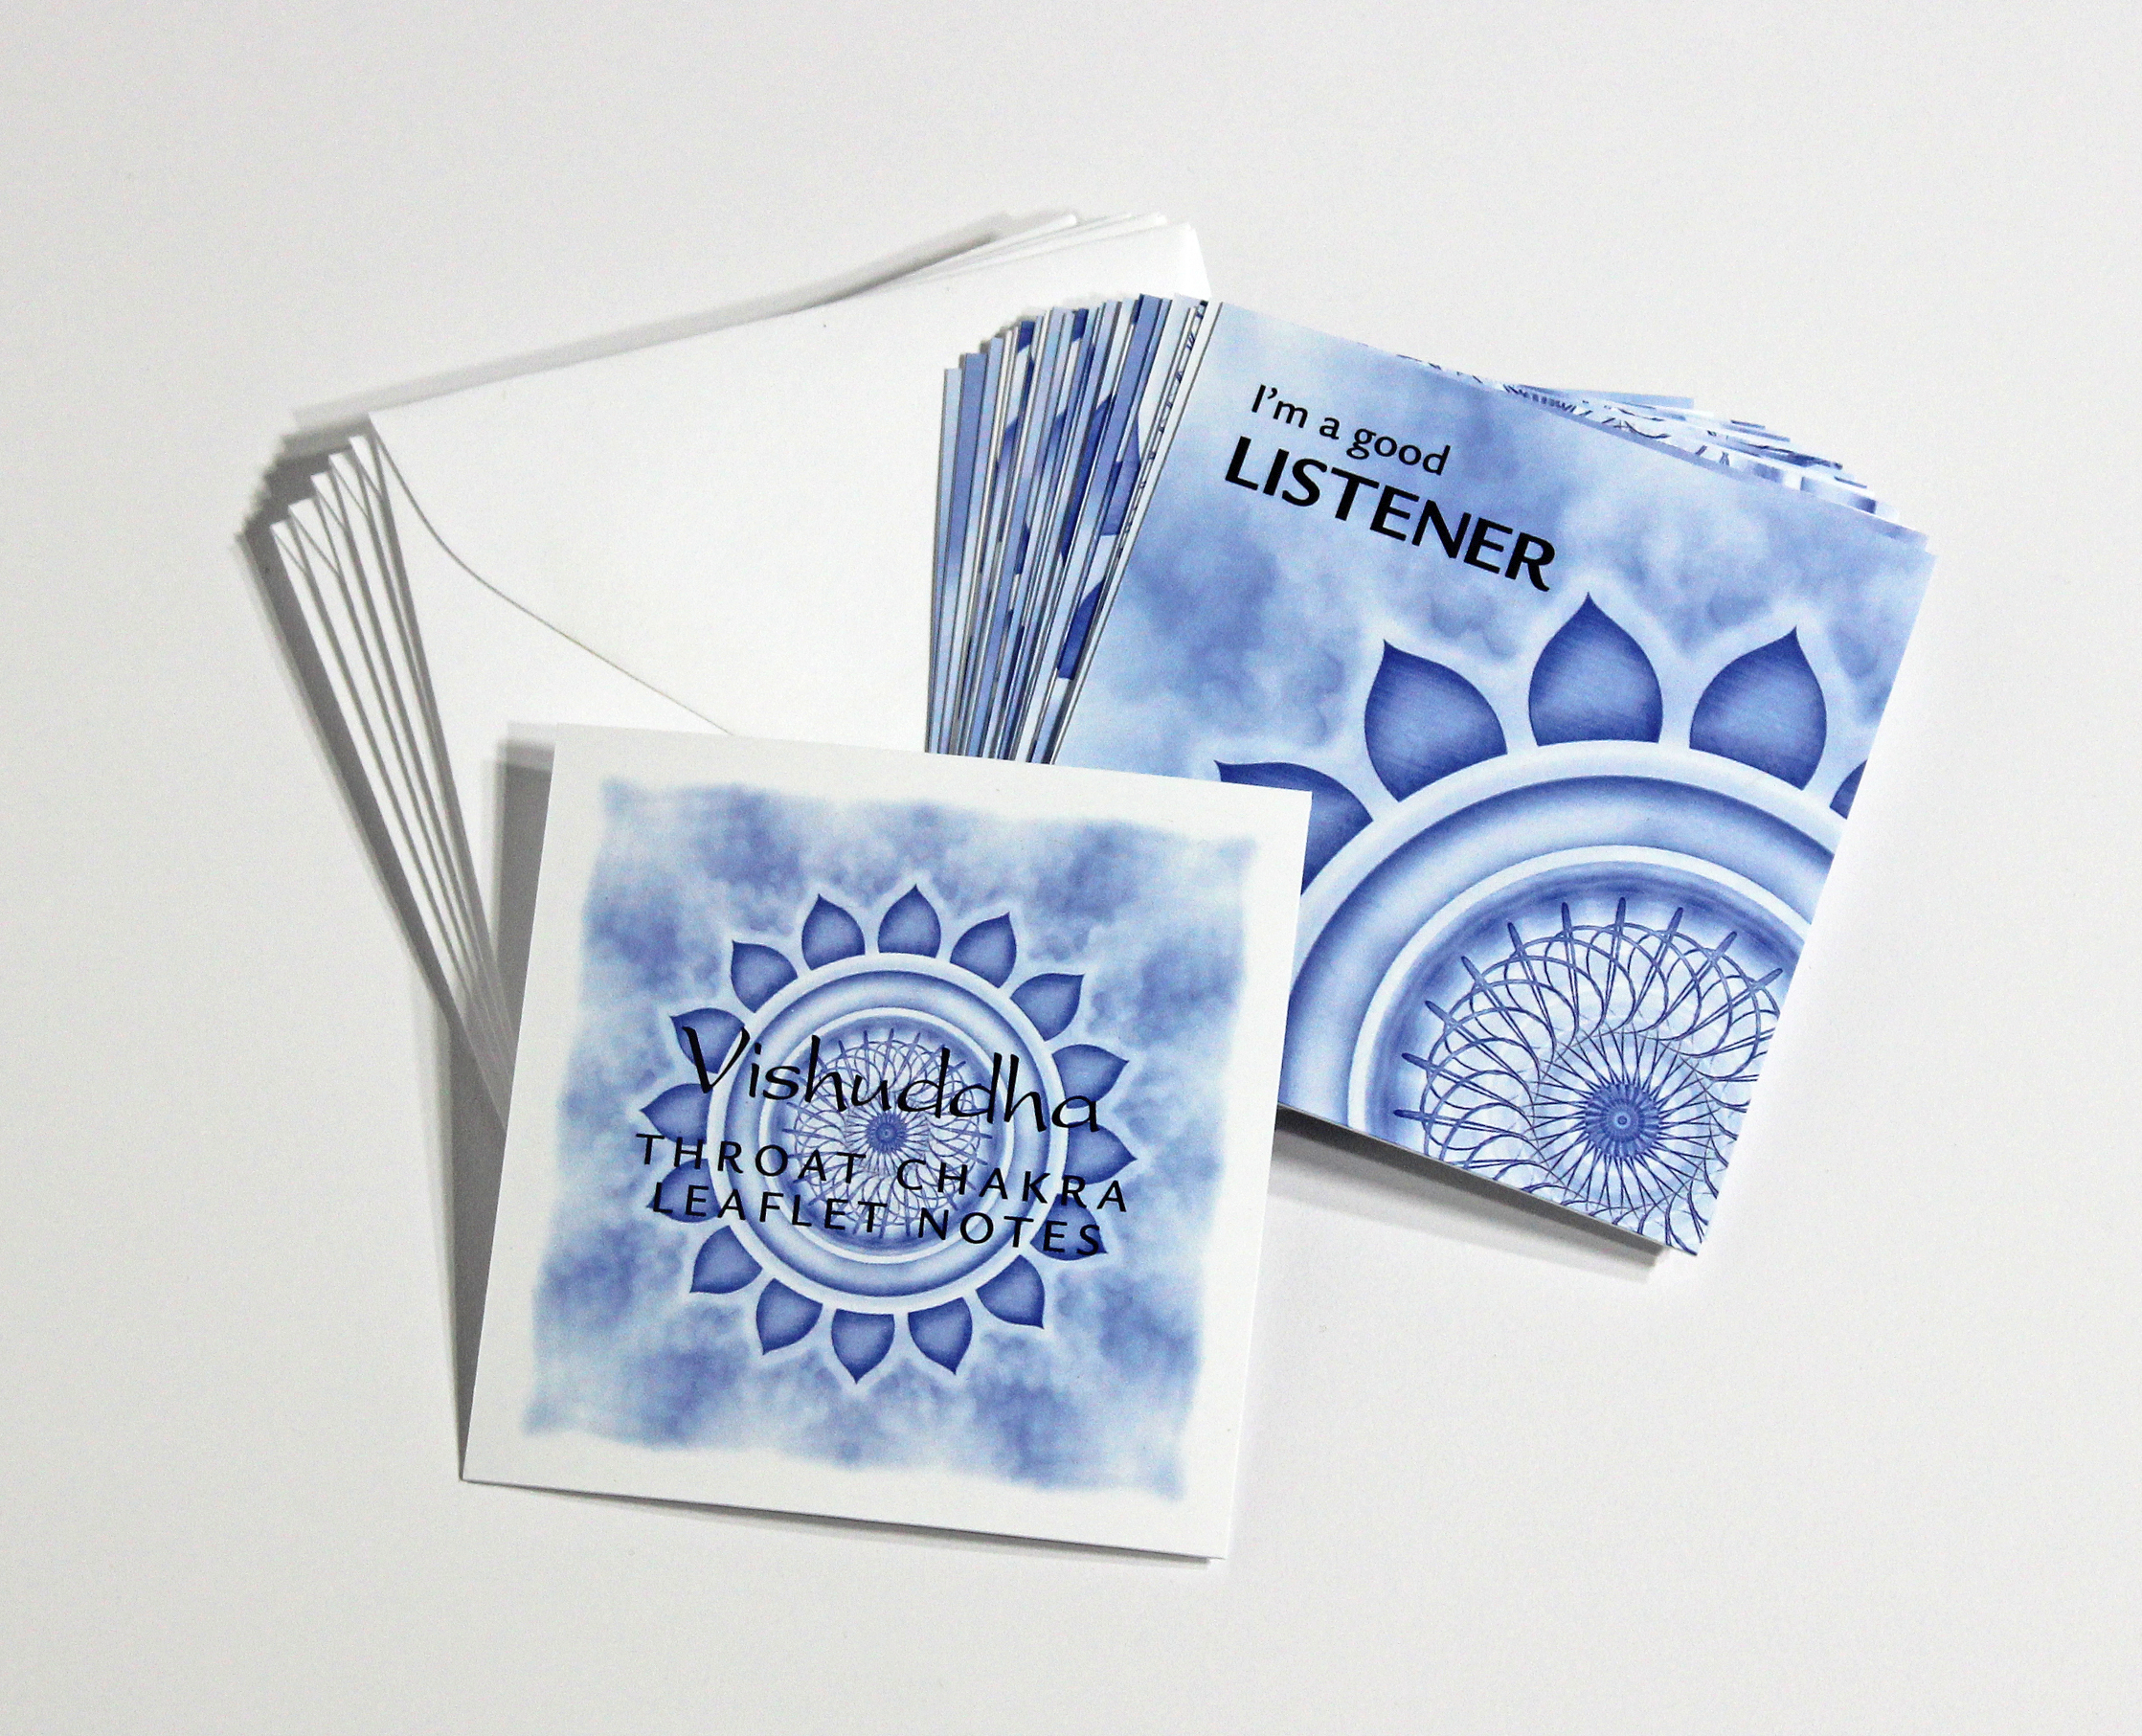 THROAT   CHAKRA LEAFLET NOTES - $18  Leave behind your inner critic, self-doubt, and negative thinking with our tiny Throat Chakra LeafLet Notes.